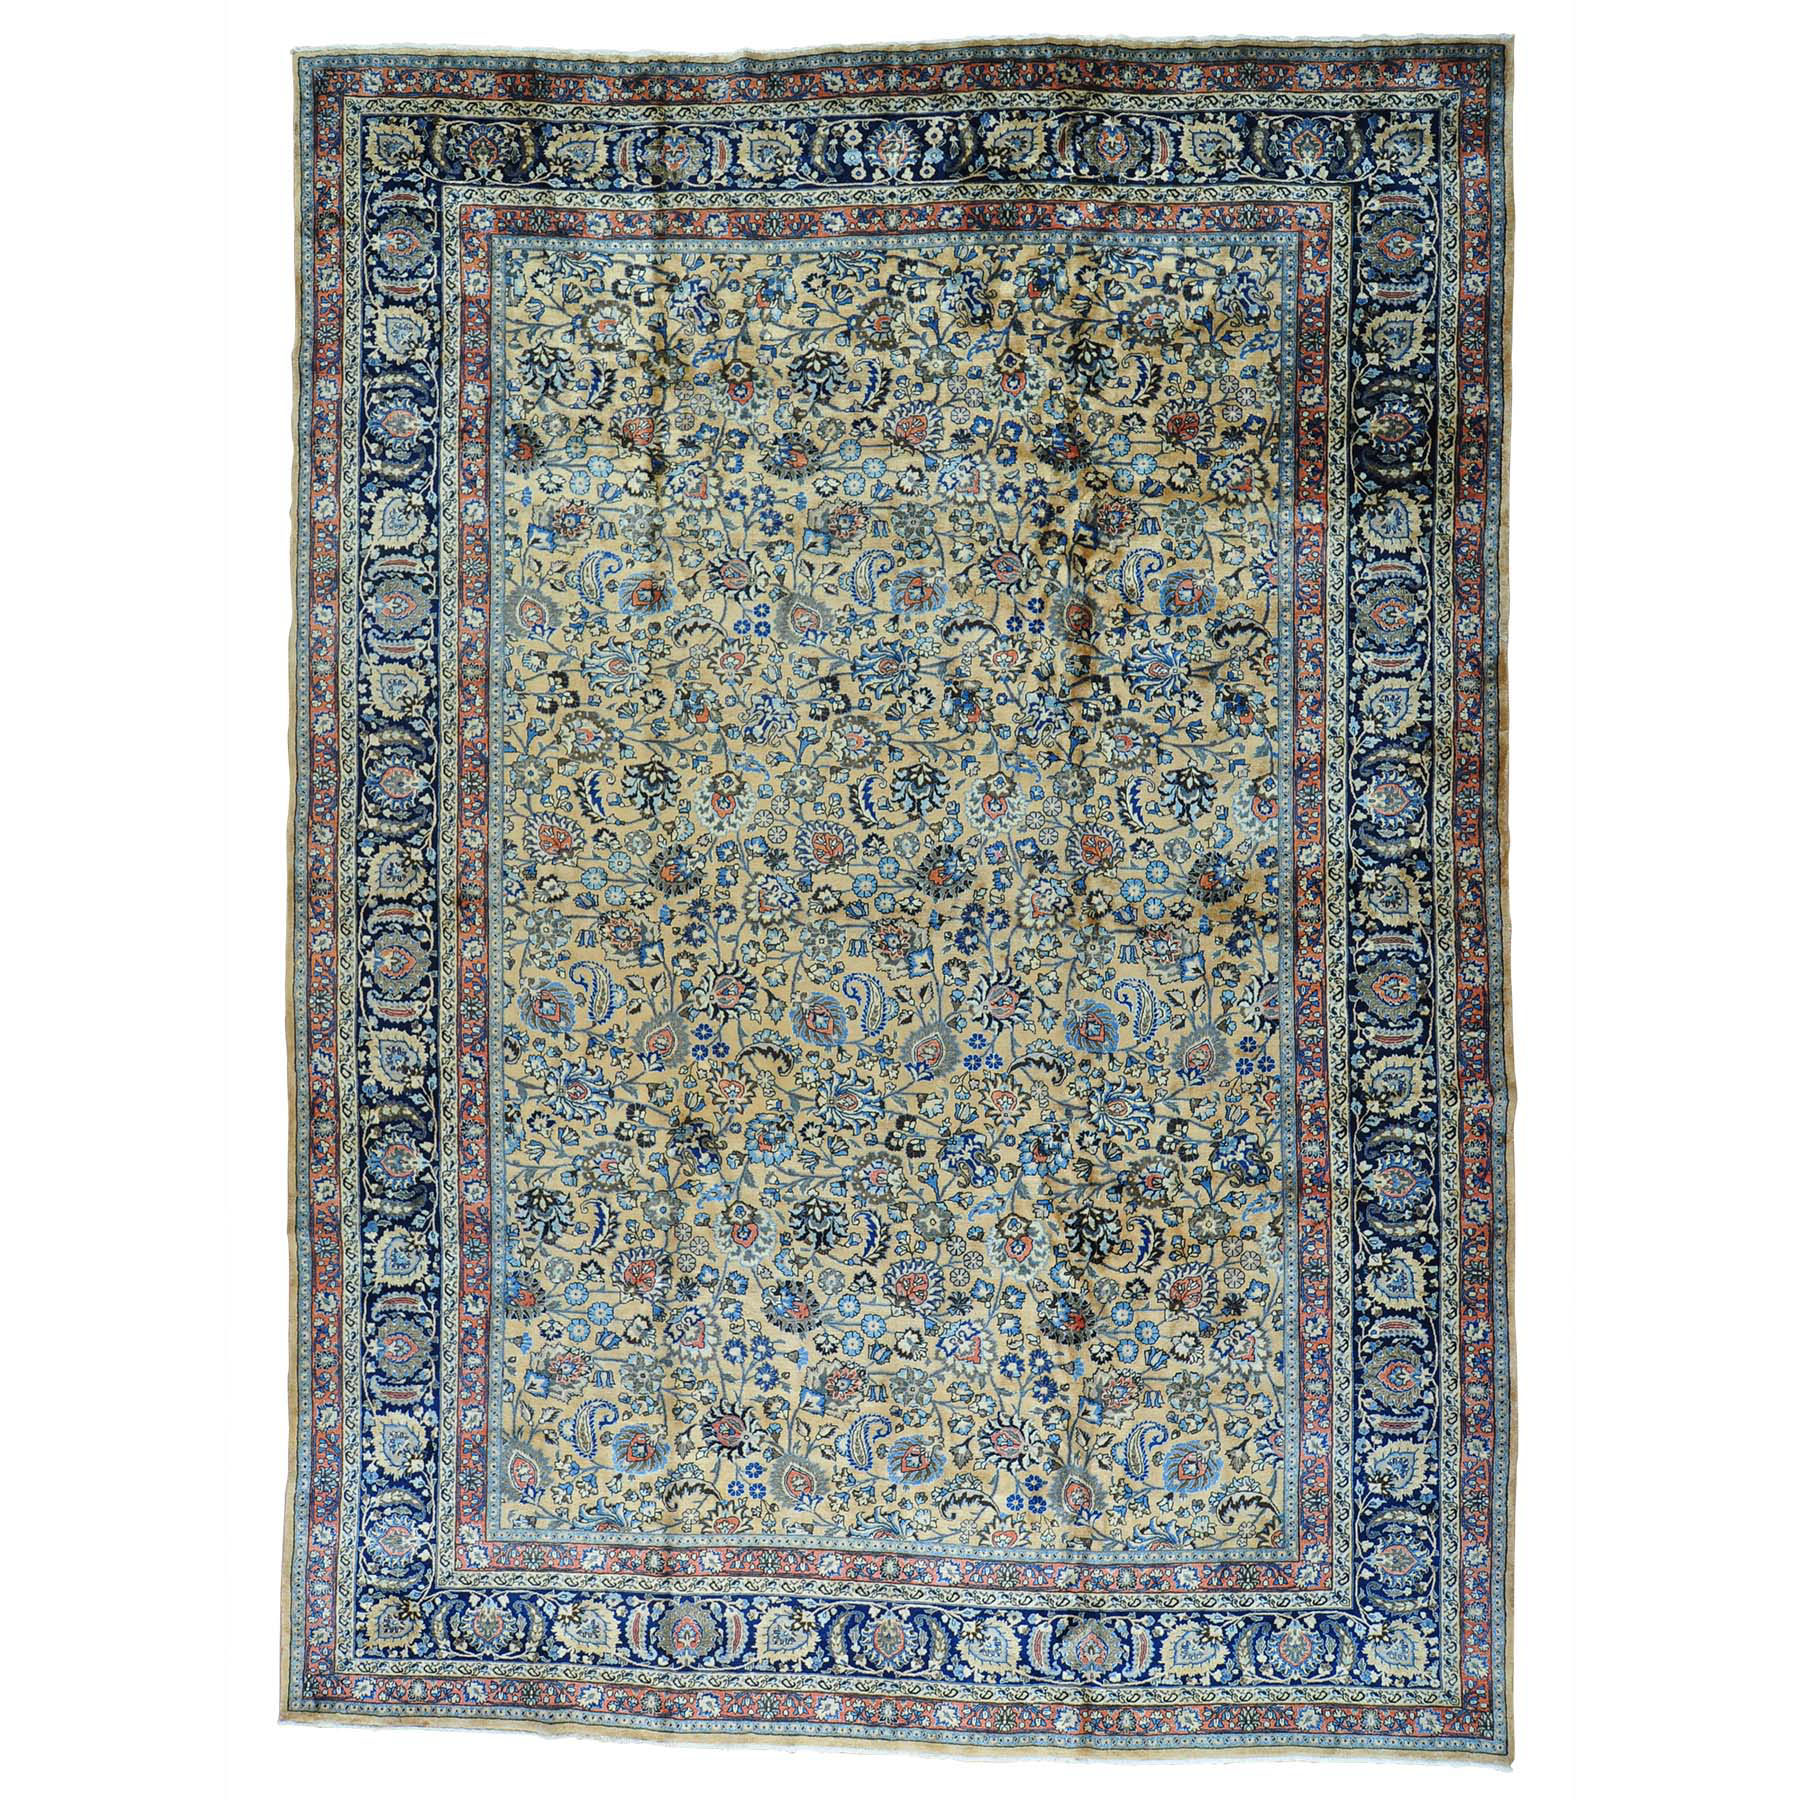 12'x16' Antique Persian Mashad Gallery Size Hand Knotted Oriental Rug